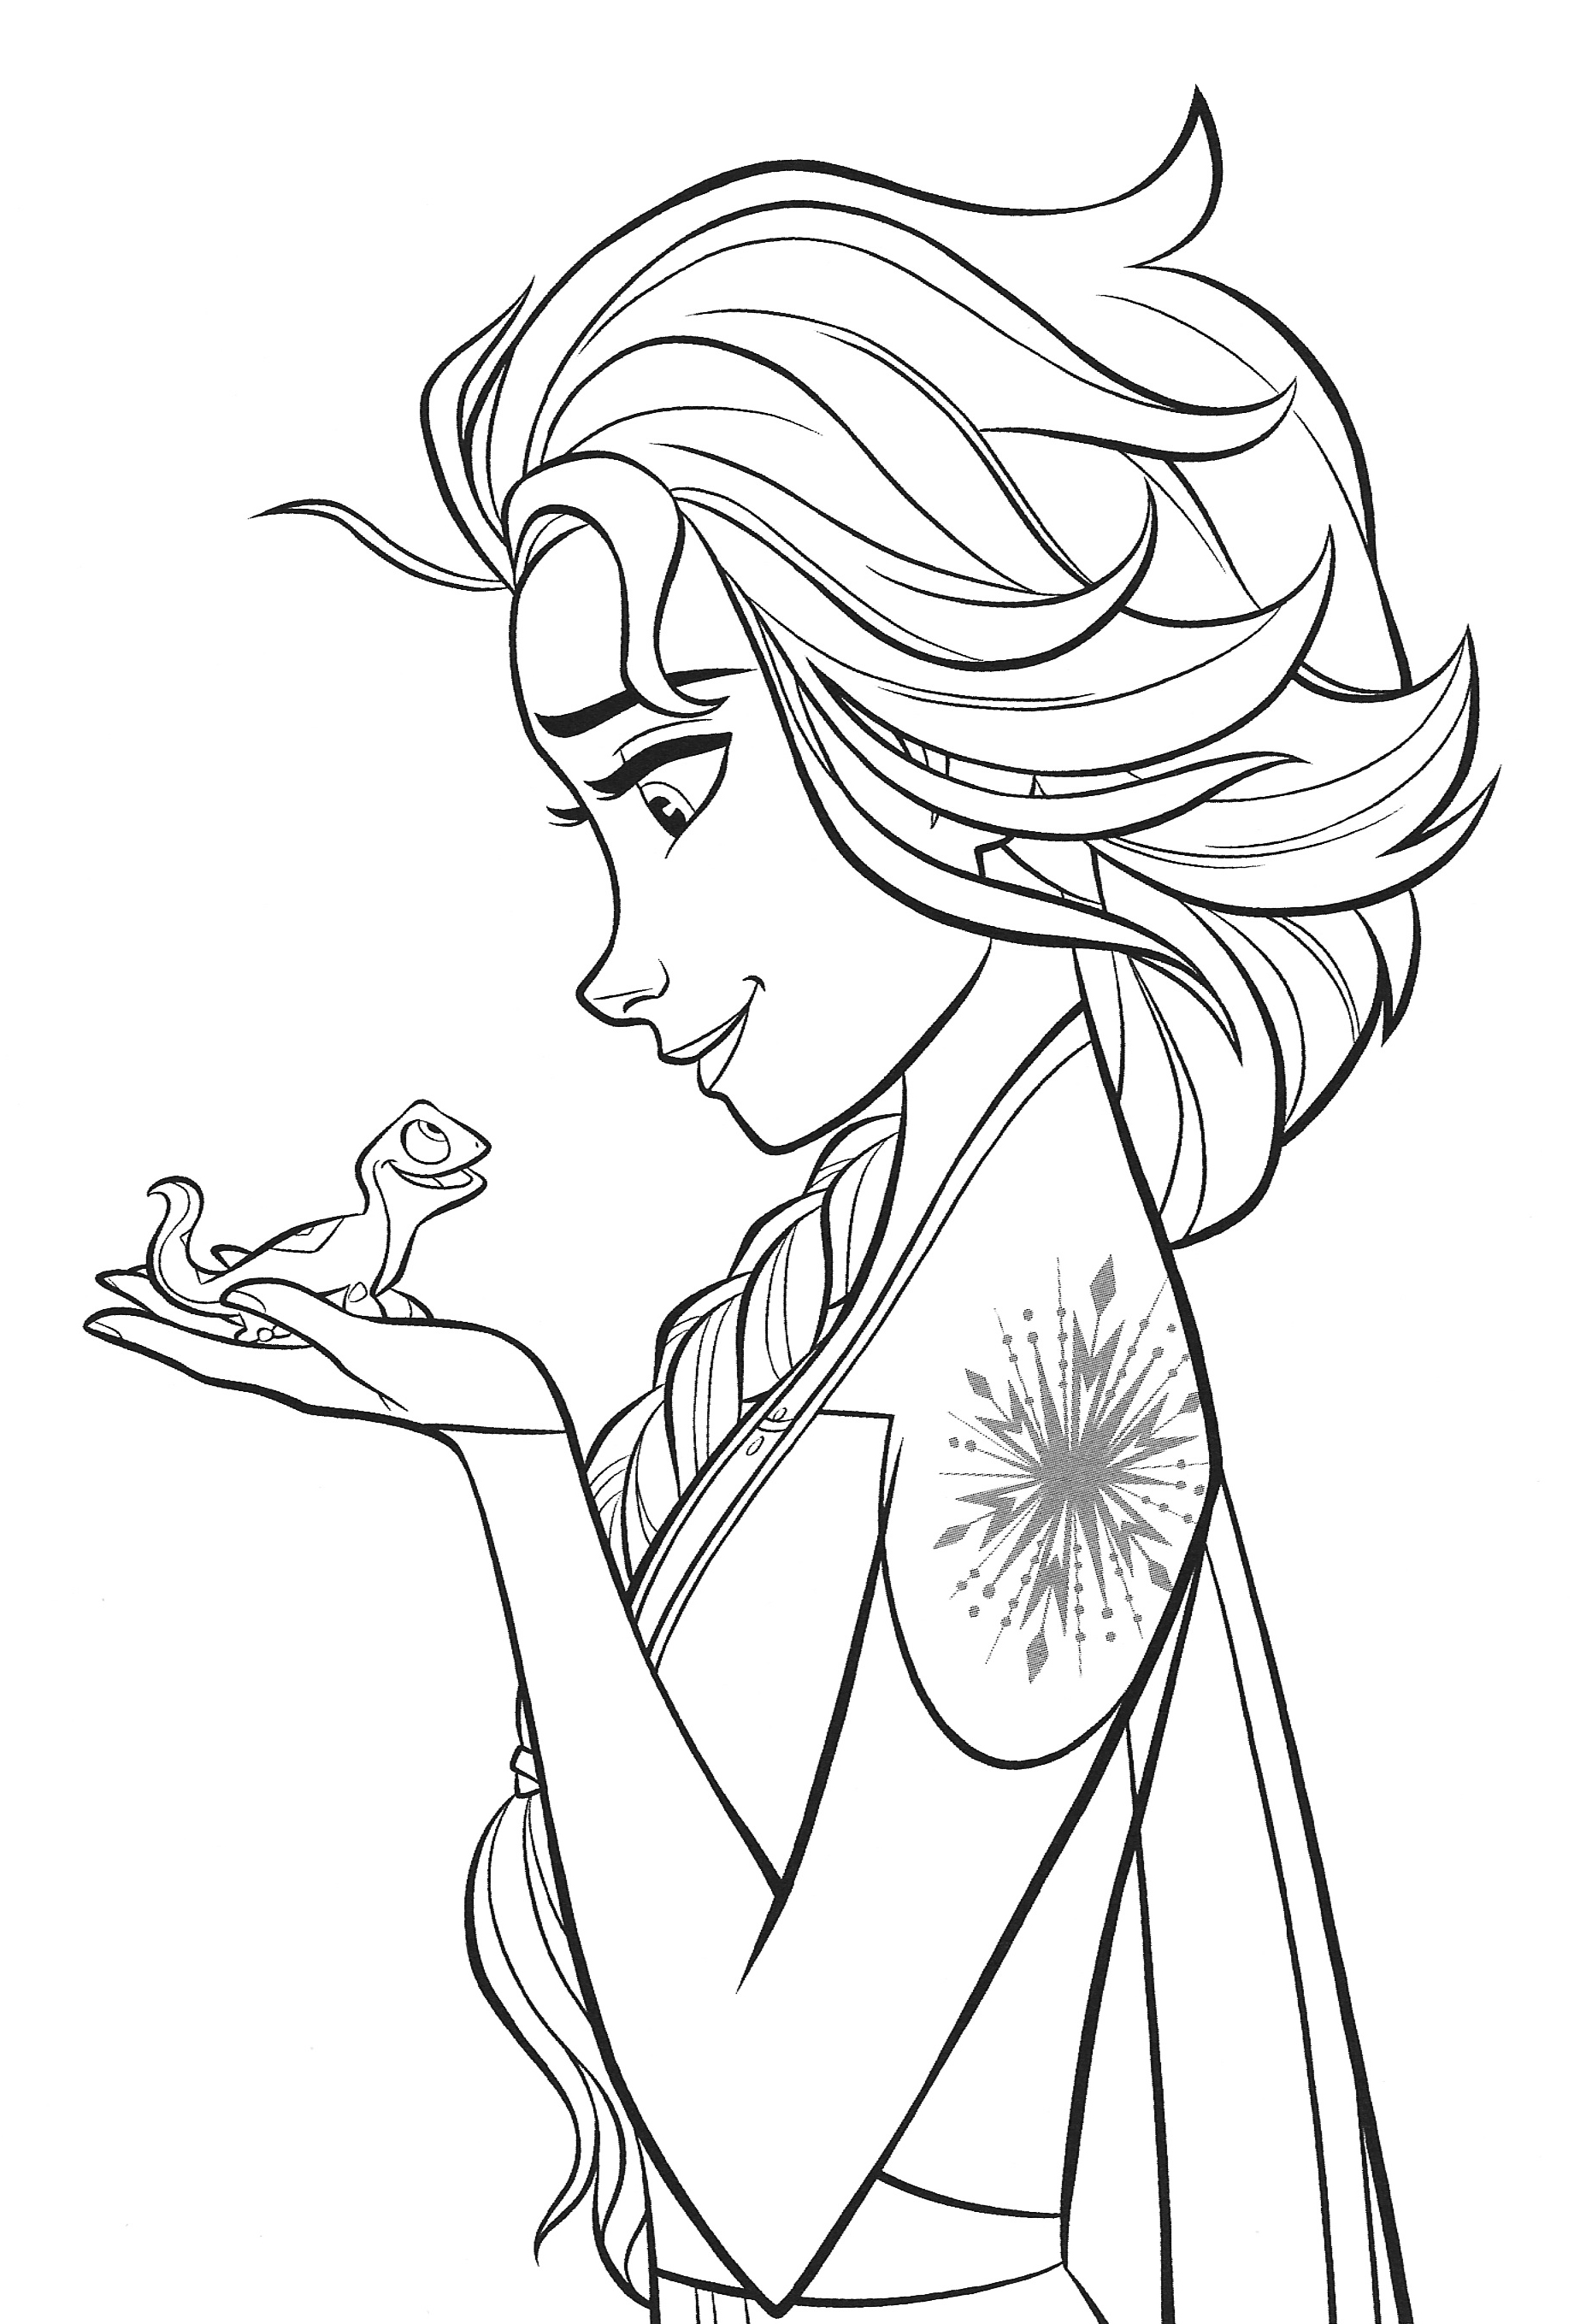 Frozen 2 Coloring Pages Into The Unknown - colouring mermaid